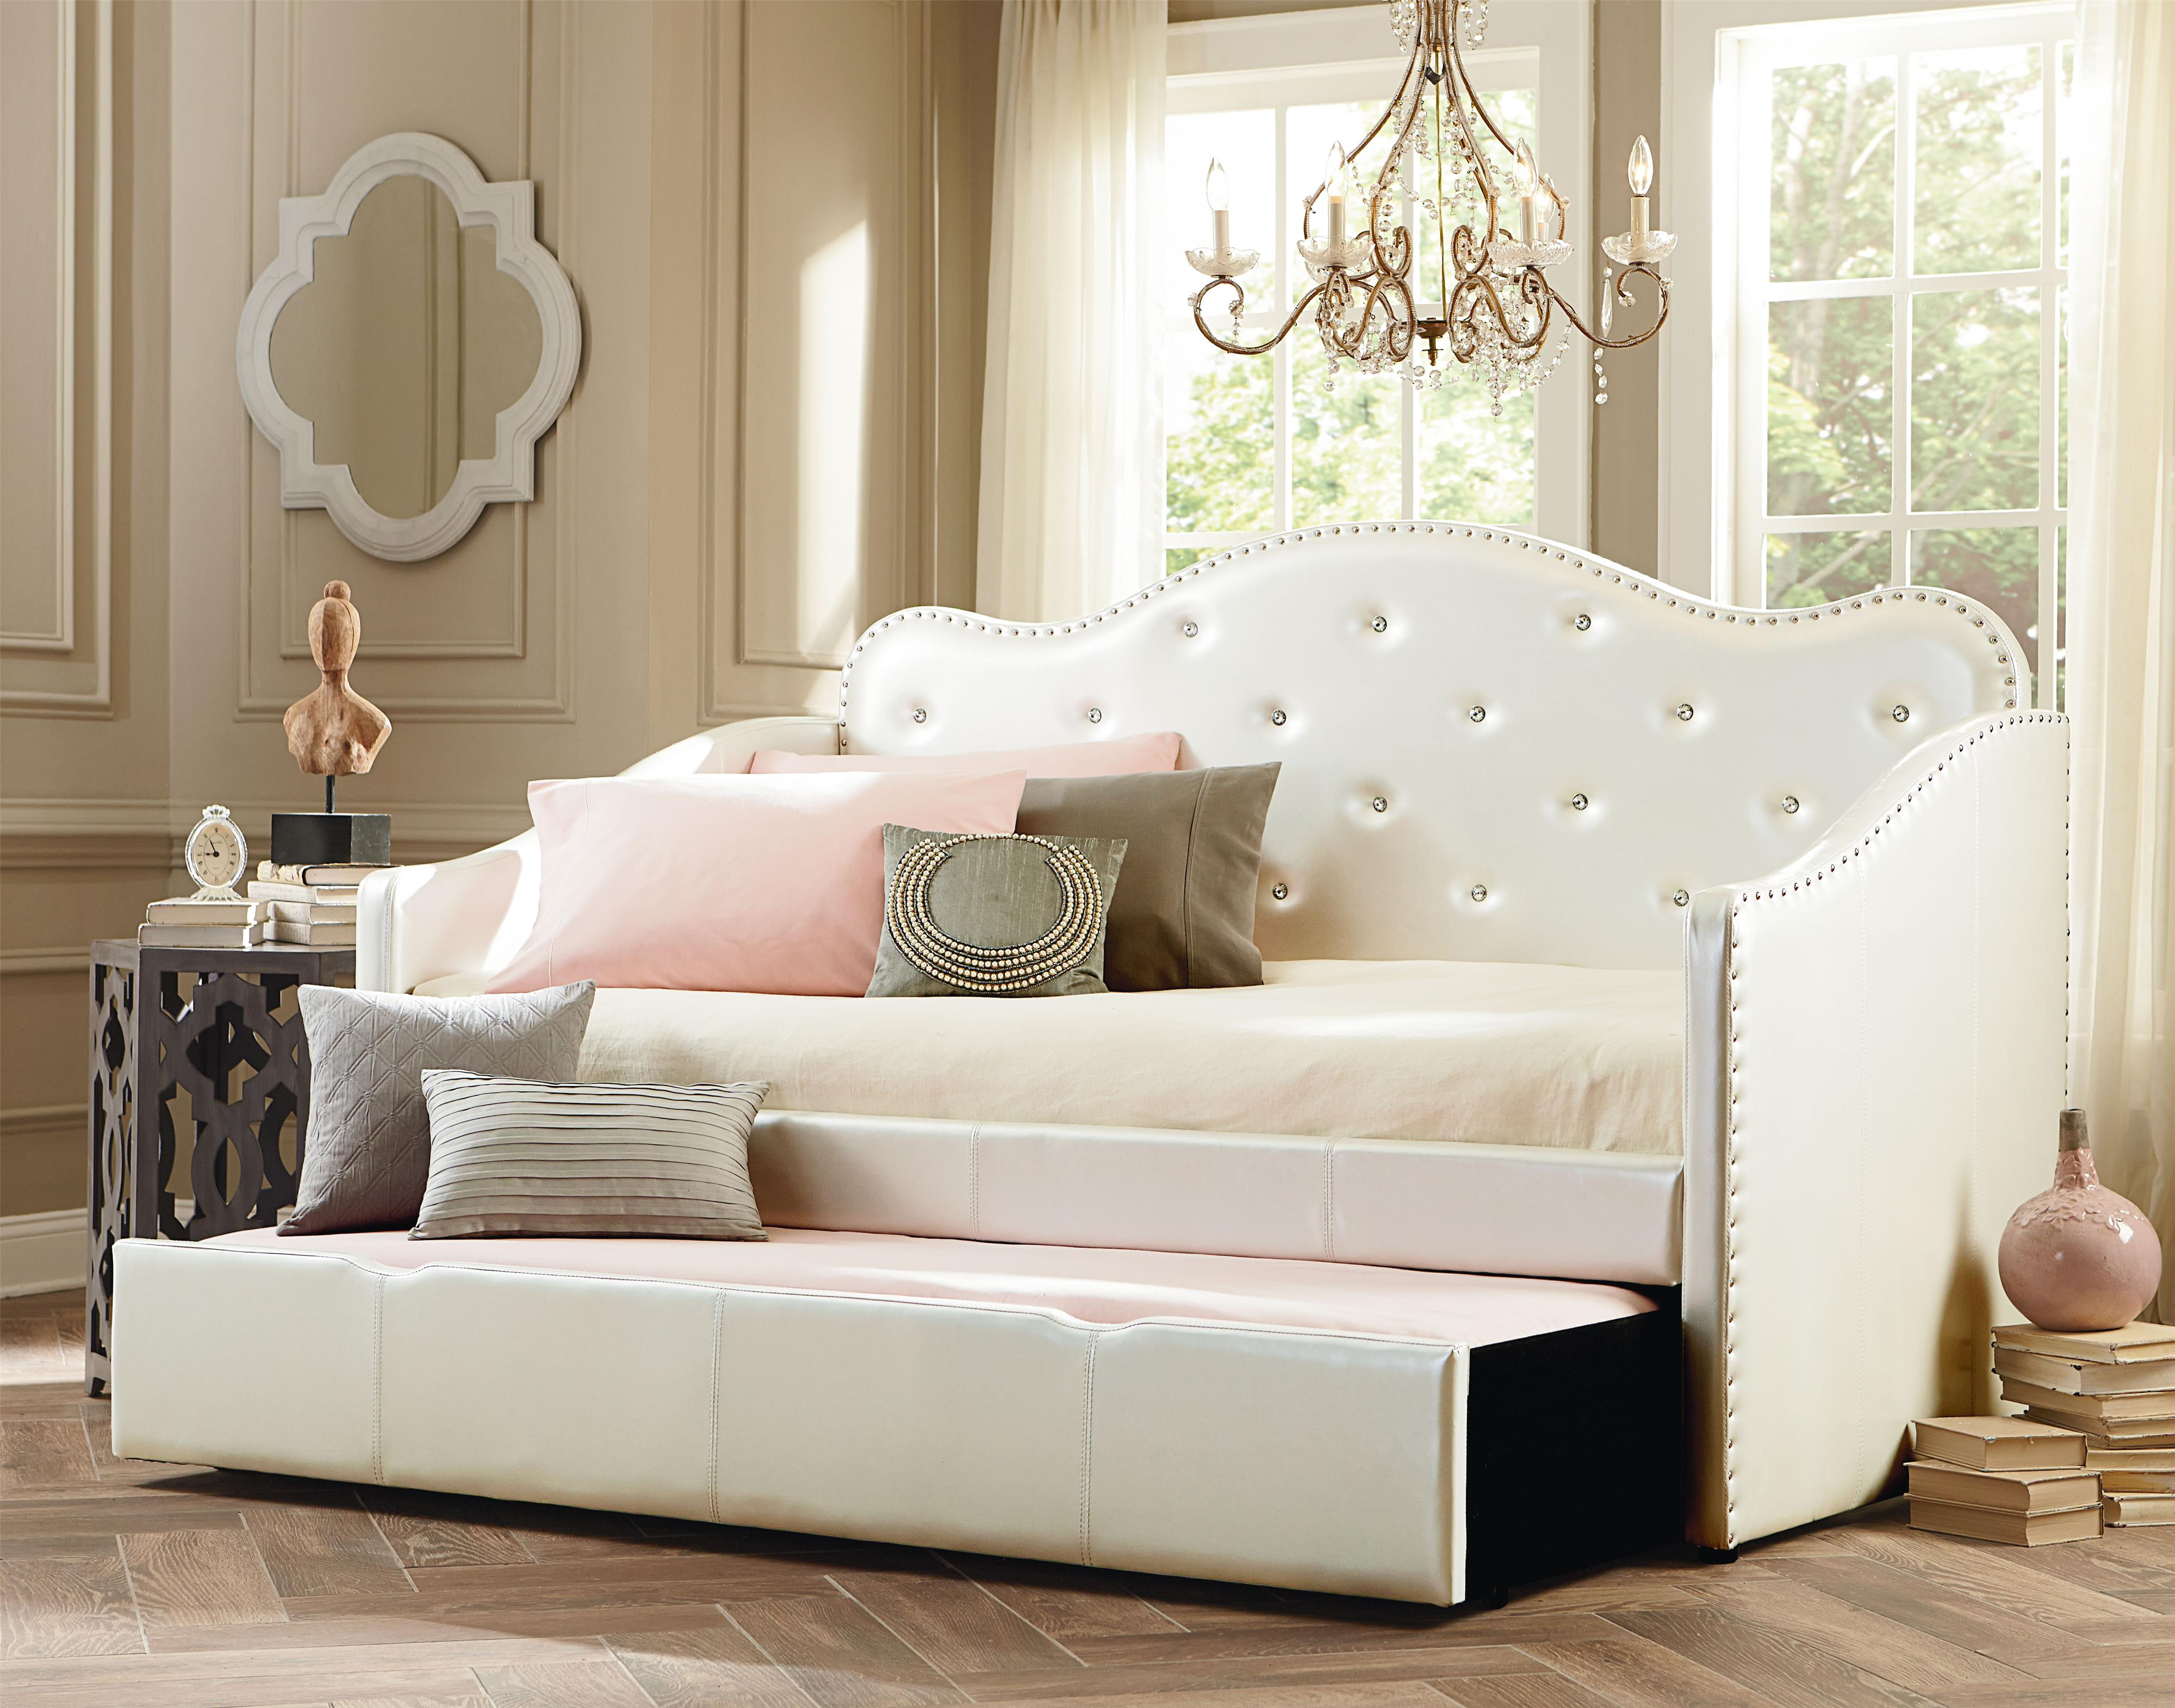 Brand-new Upholstered Daybed with Tufted Detail | HomesFeed EQ33